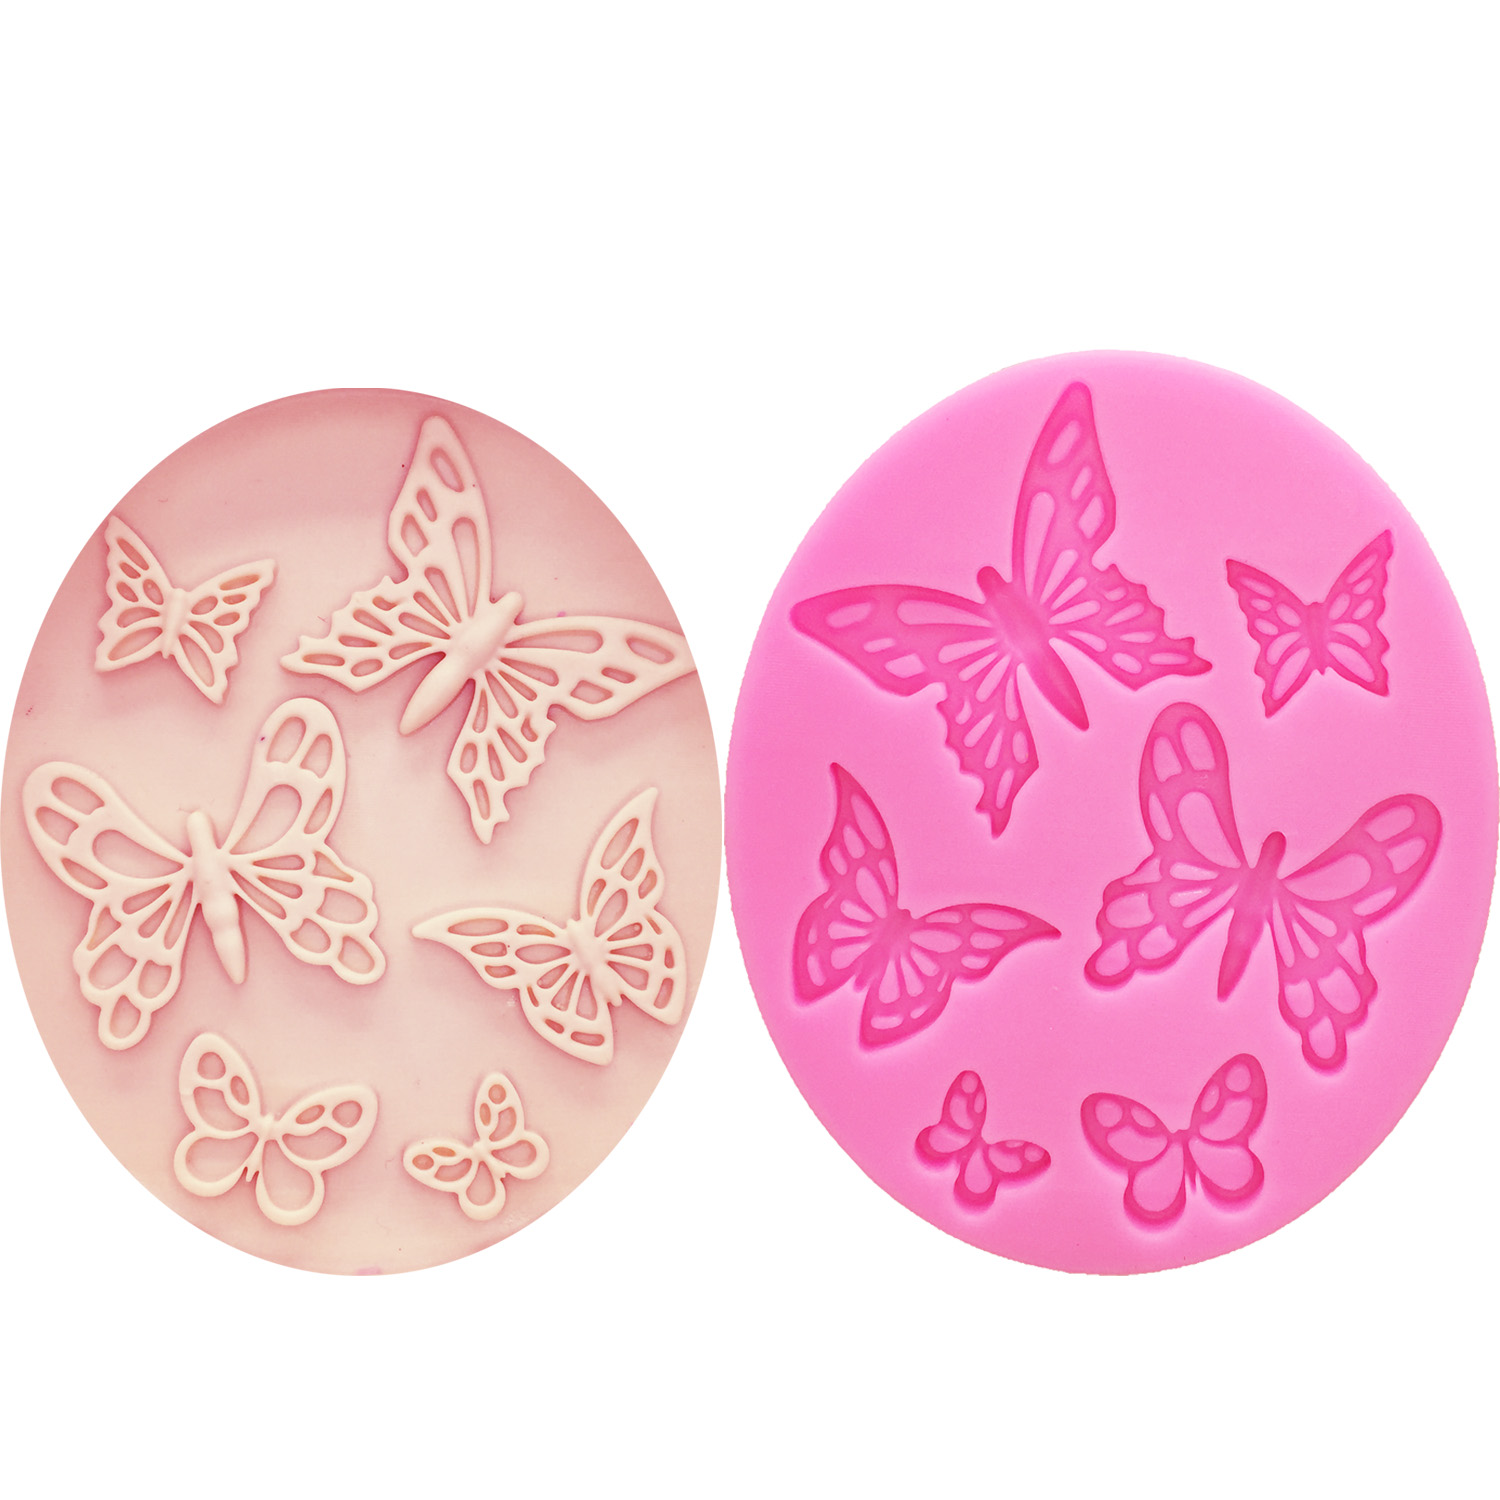 WJSYSHOP Rose Shape Silicone Chocolate Fondant Biscuit Mold Cake Decorating Baking Mould Single Roses